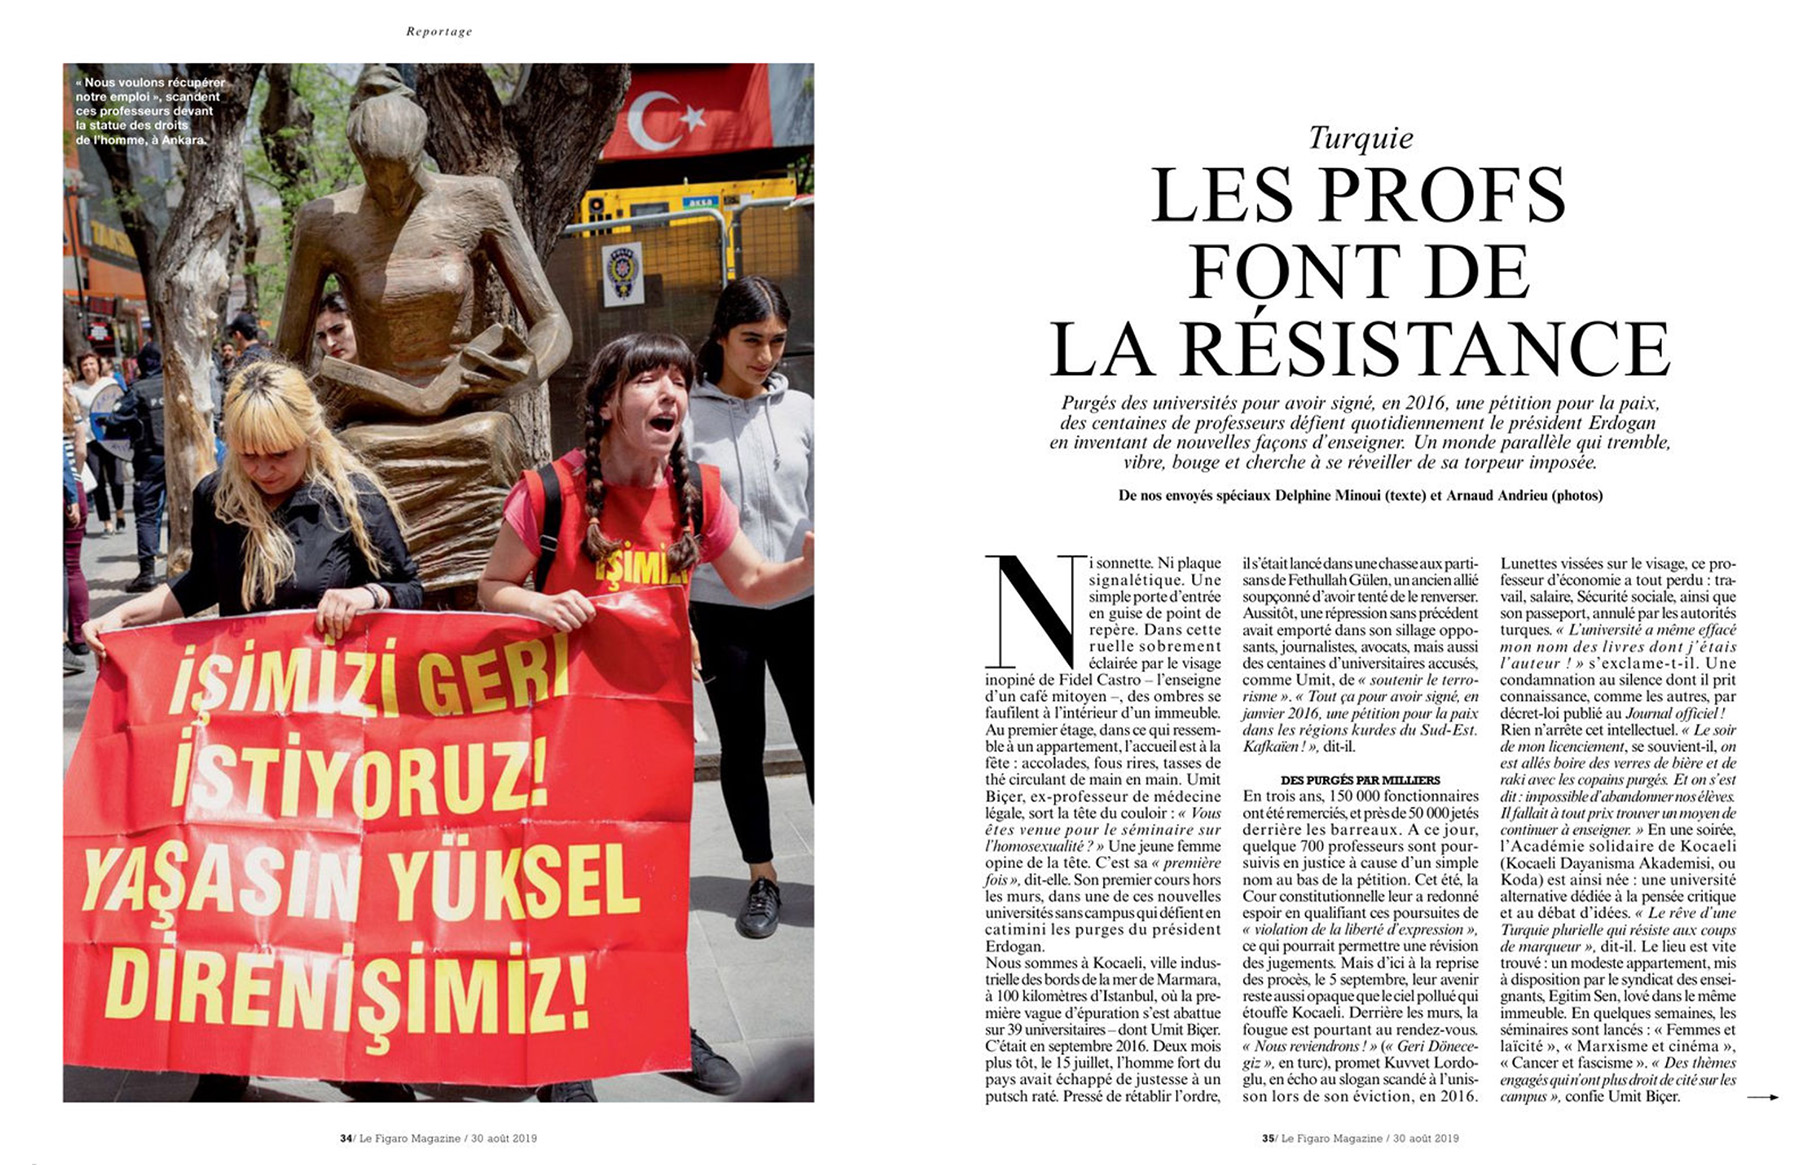 Assignment for Le Figaro Magazine